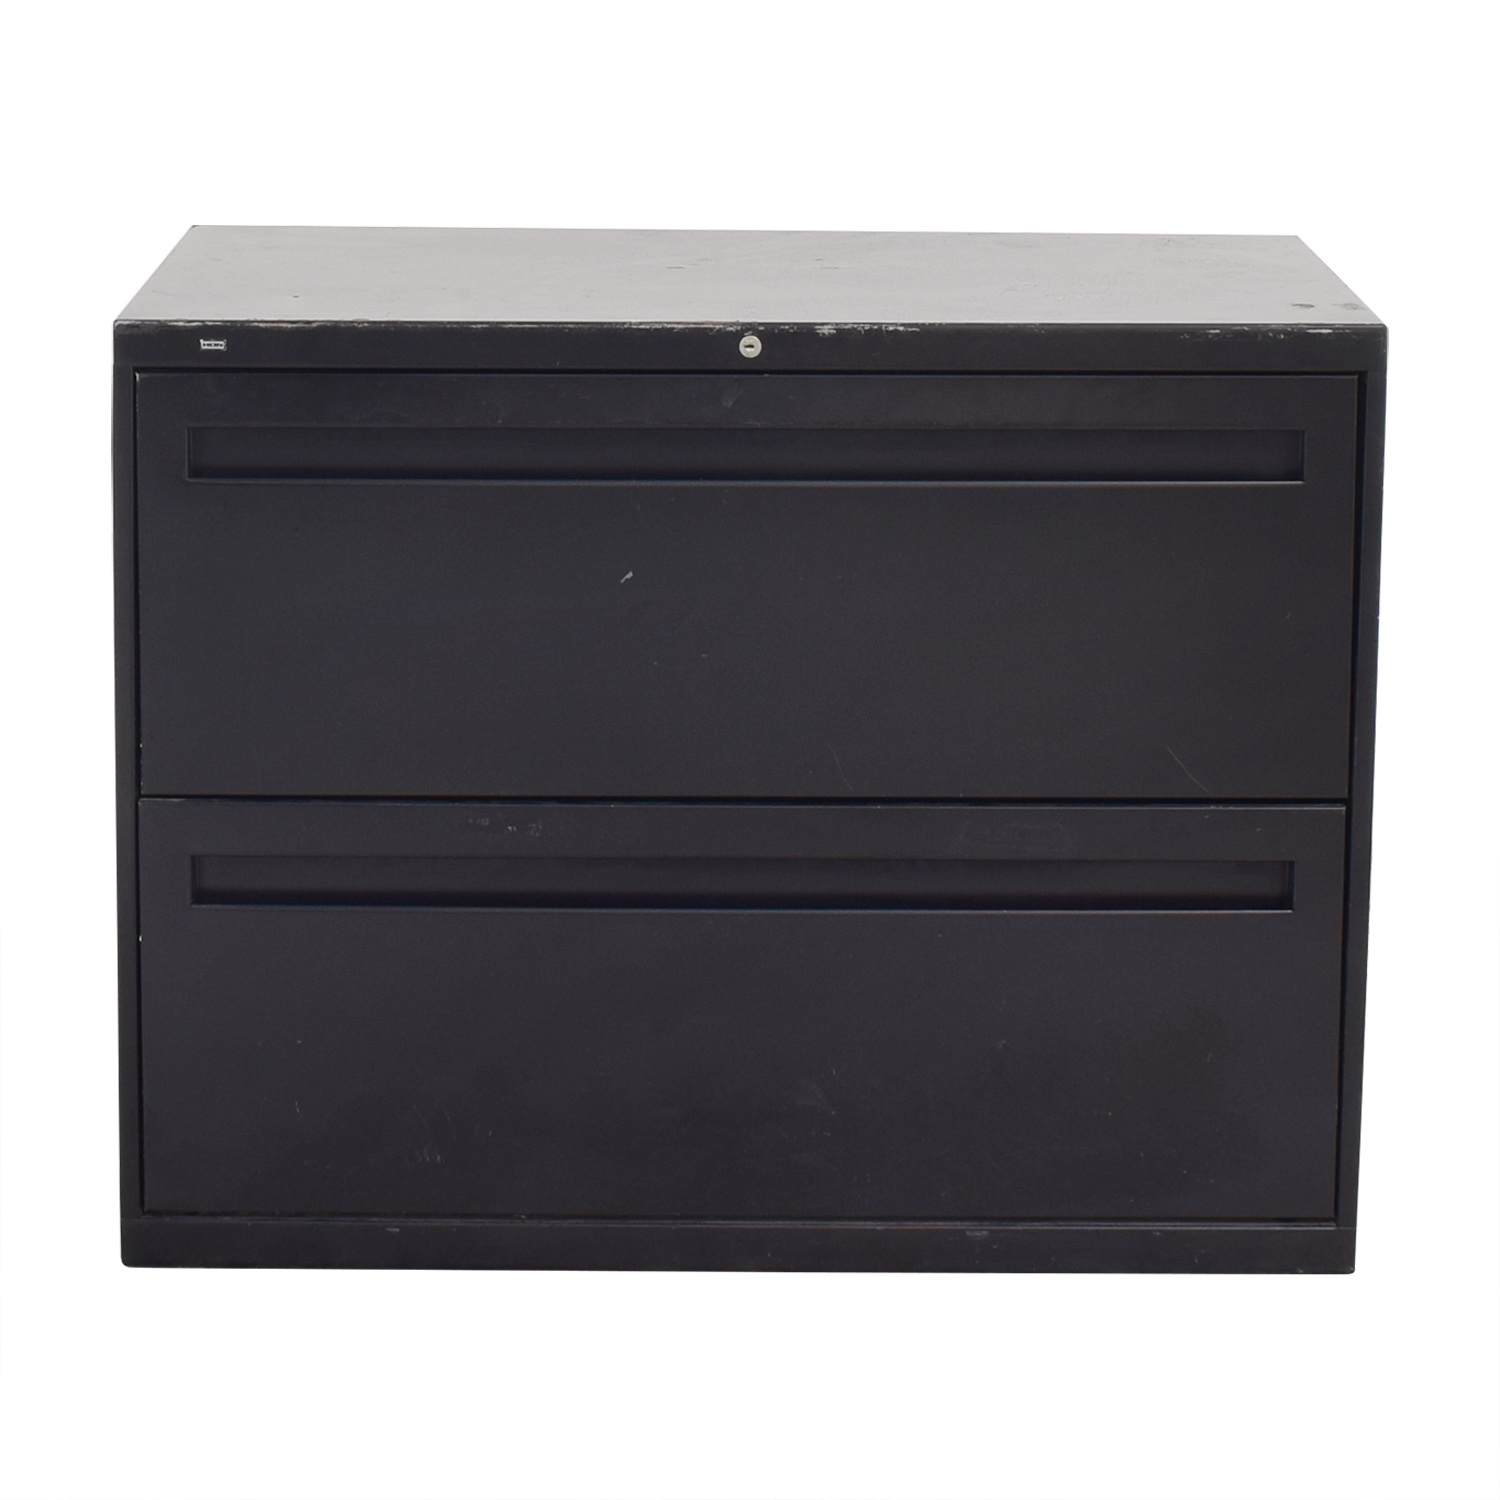 Hon HON 2-Drawer Lateral File Cabinet nj